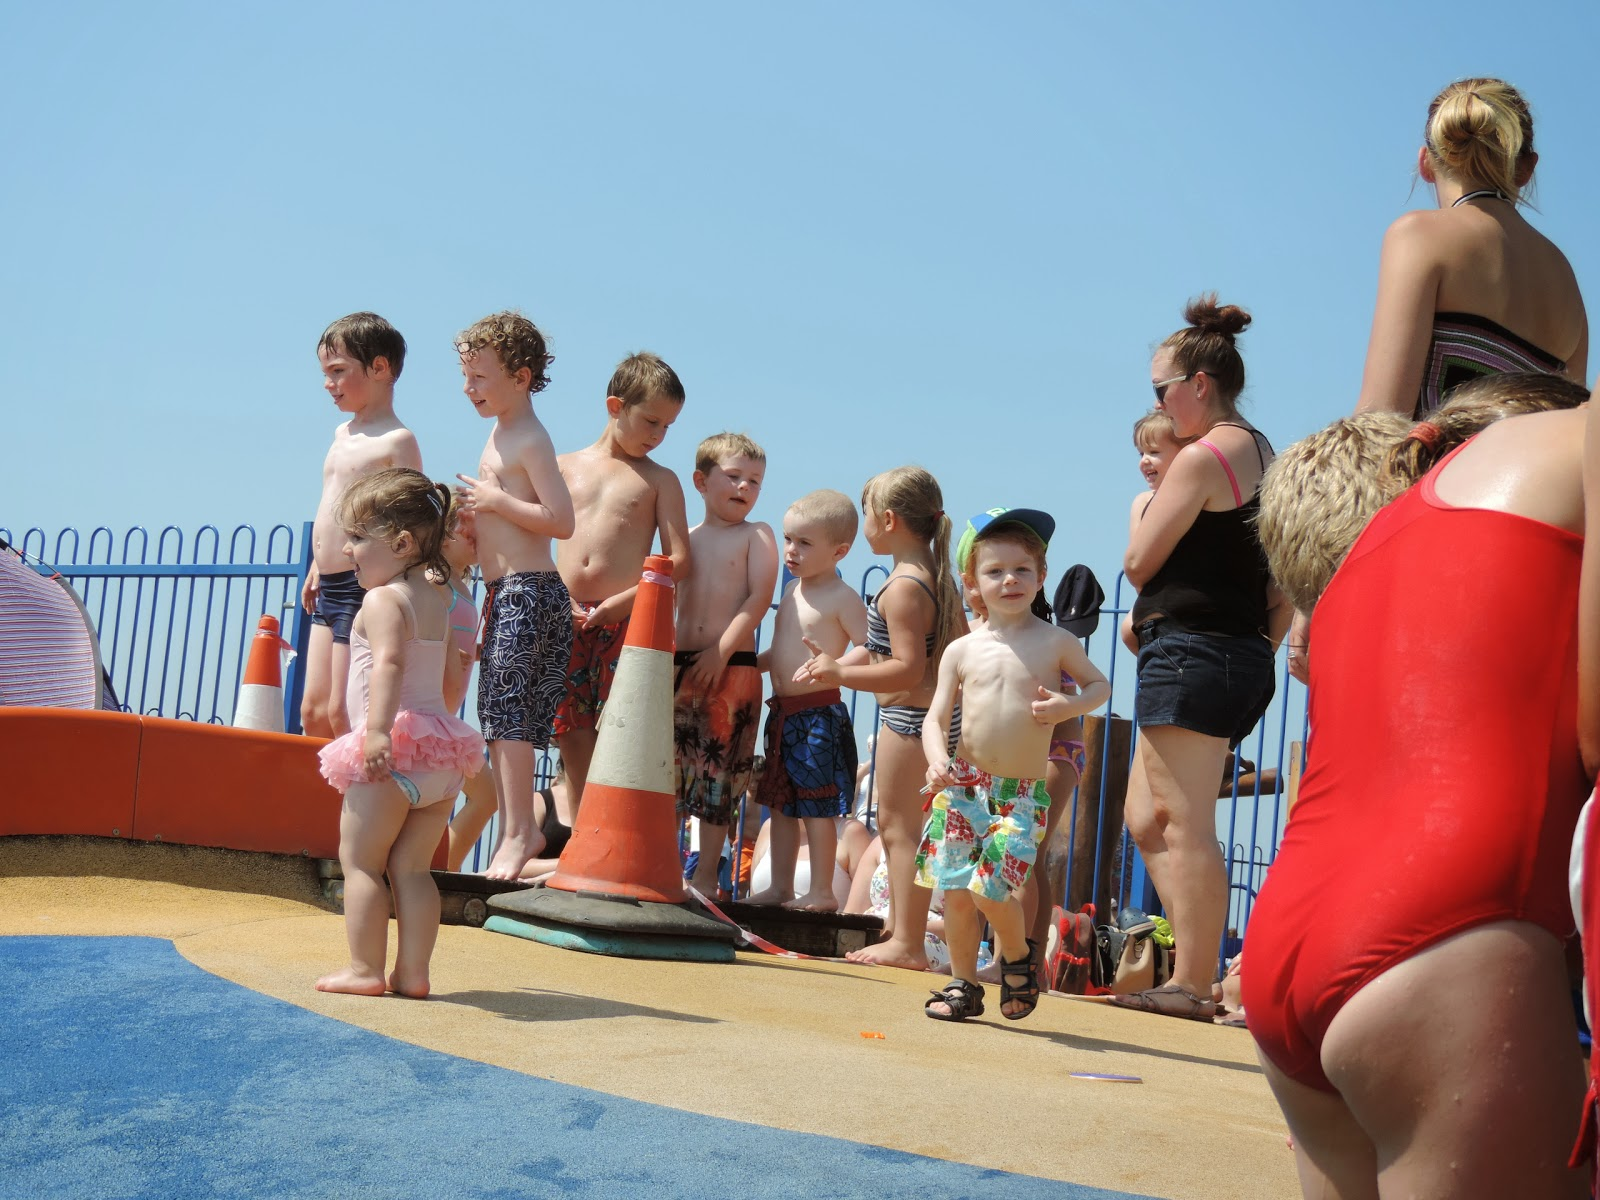 kids lining up for a go on the waterslide first day of the summer holidays